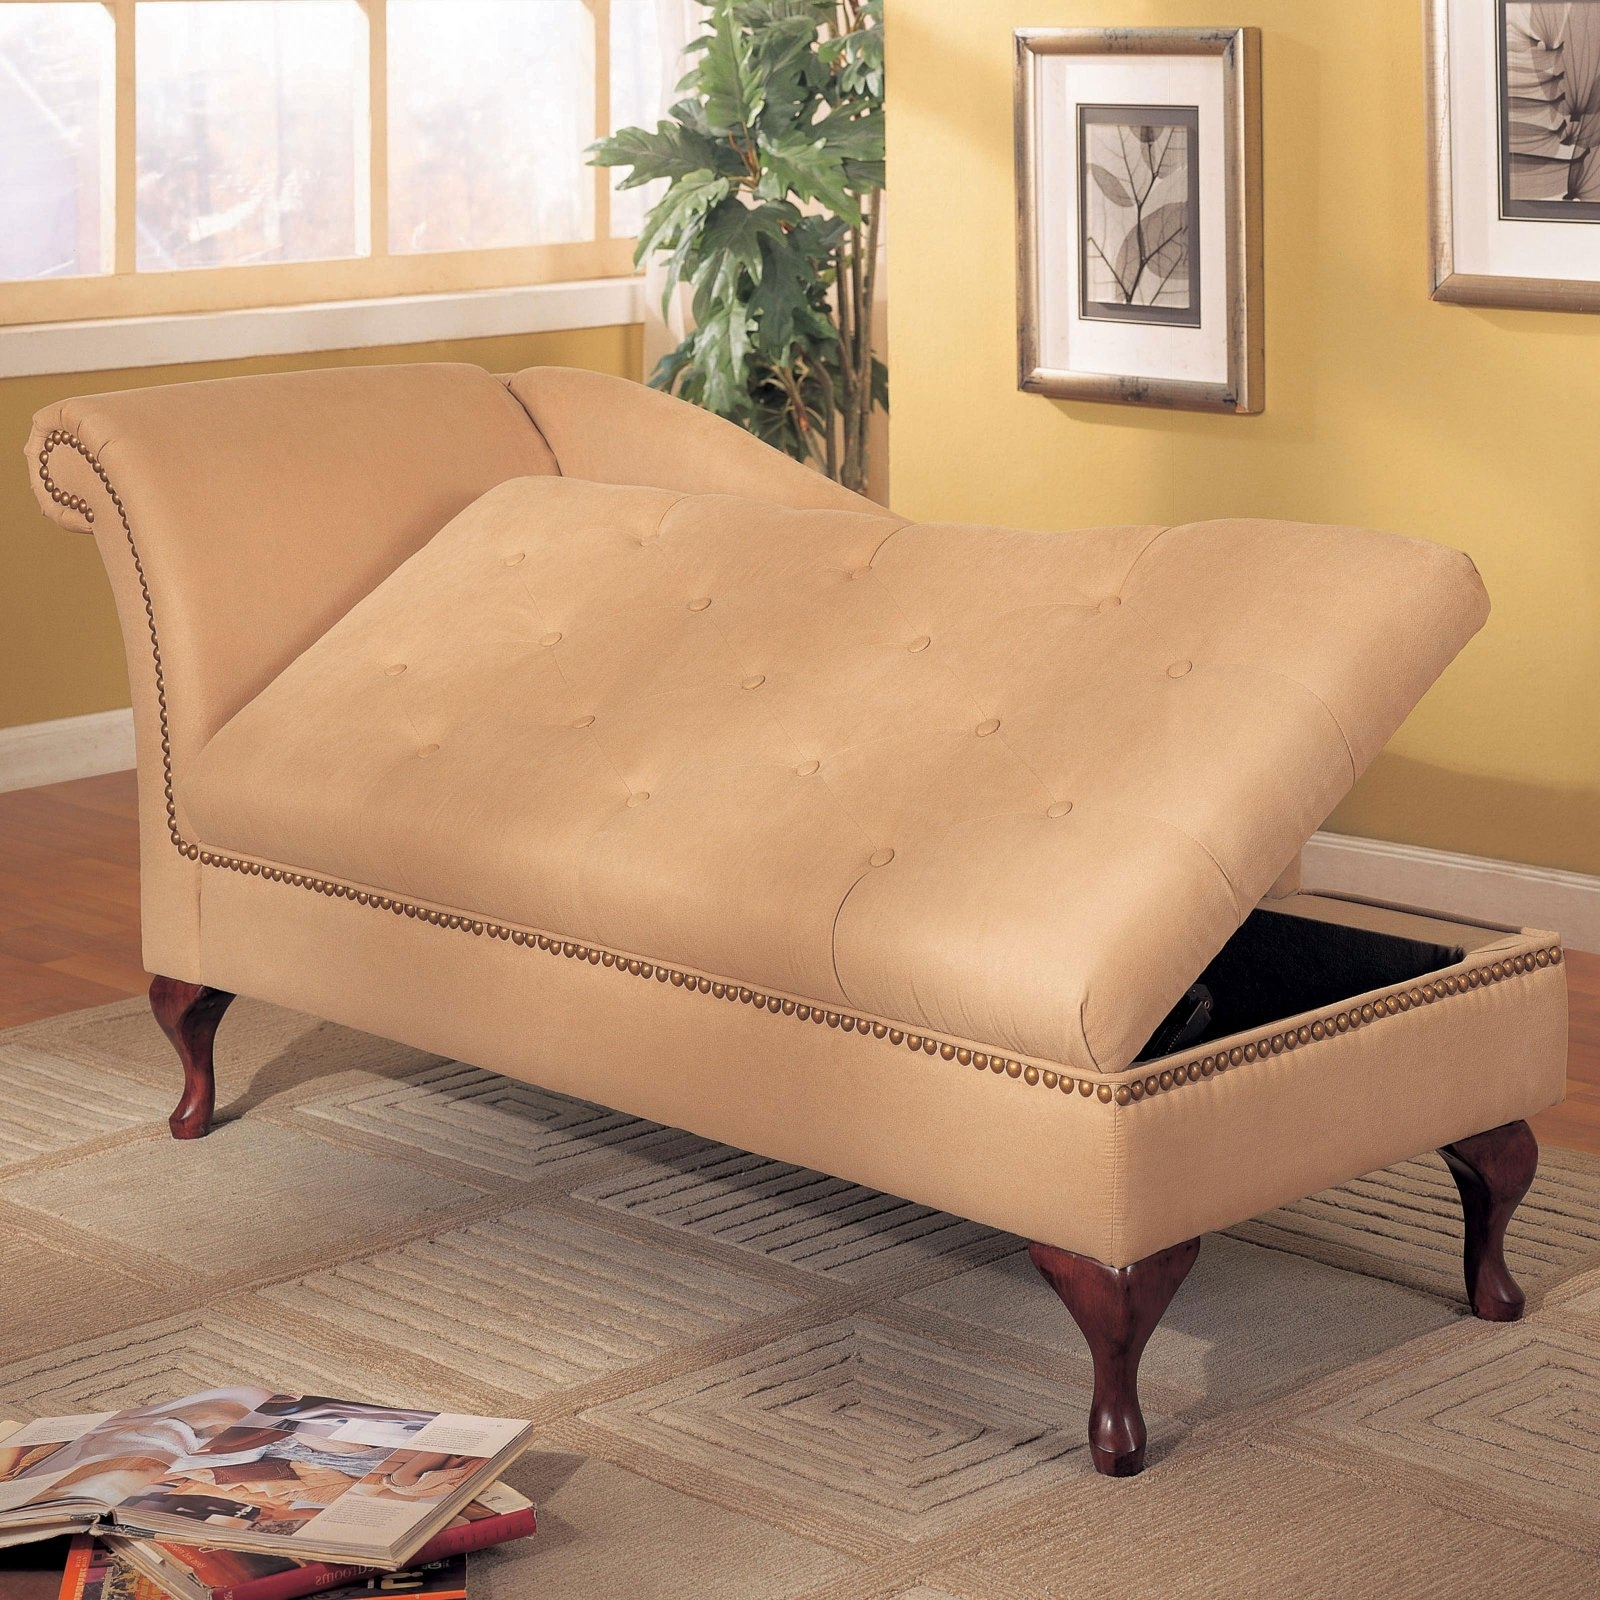 Small Chaise Lounge Chair For Room Awesome Bedroom Chairs Ideas Inside Fashionable Chaise Lounge Chairs For Bedroom (View 14 of 15)